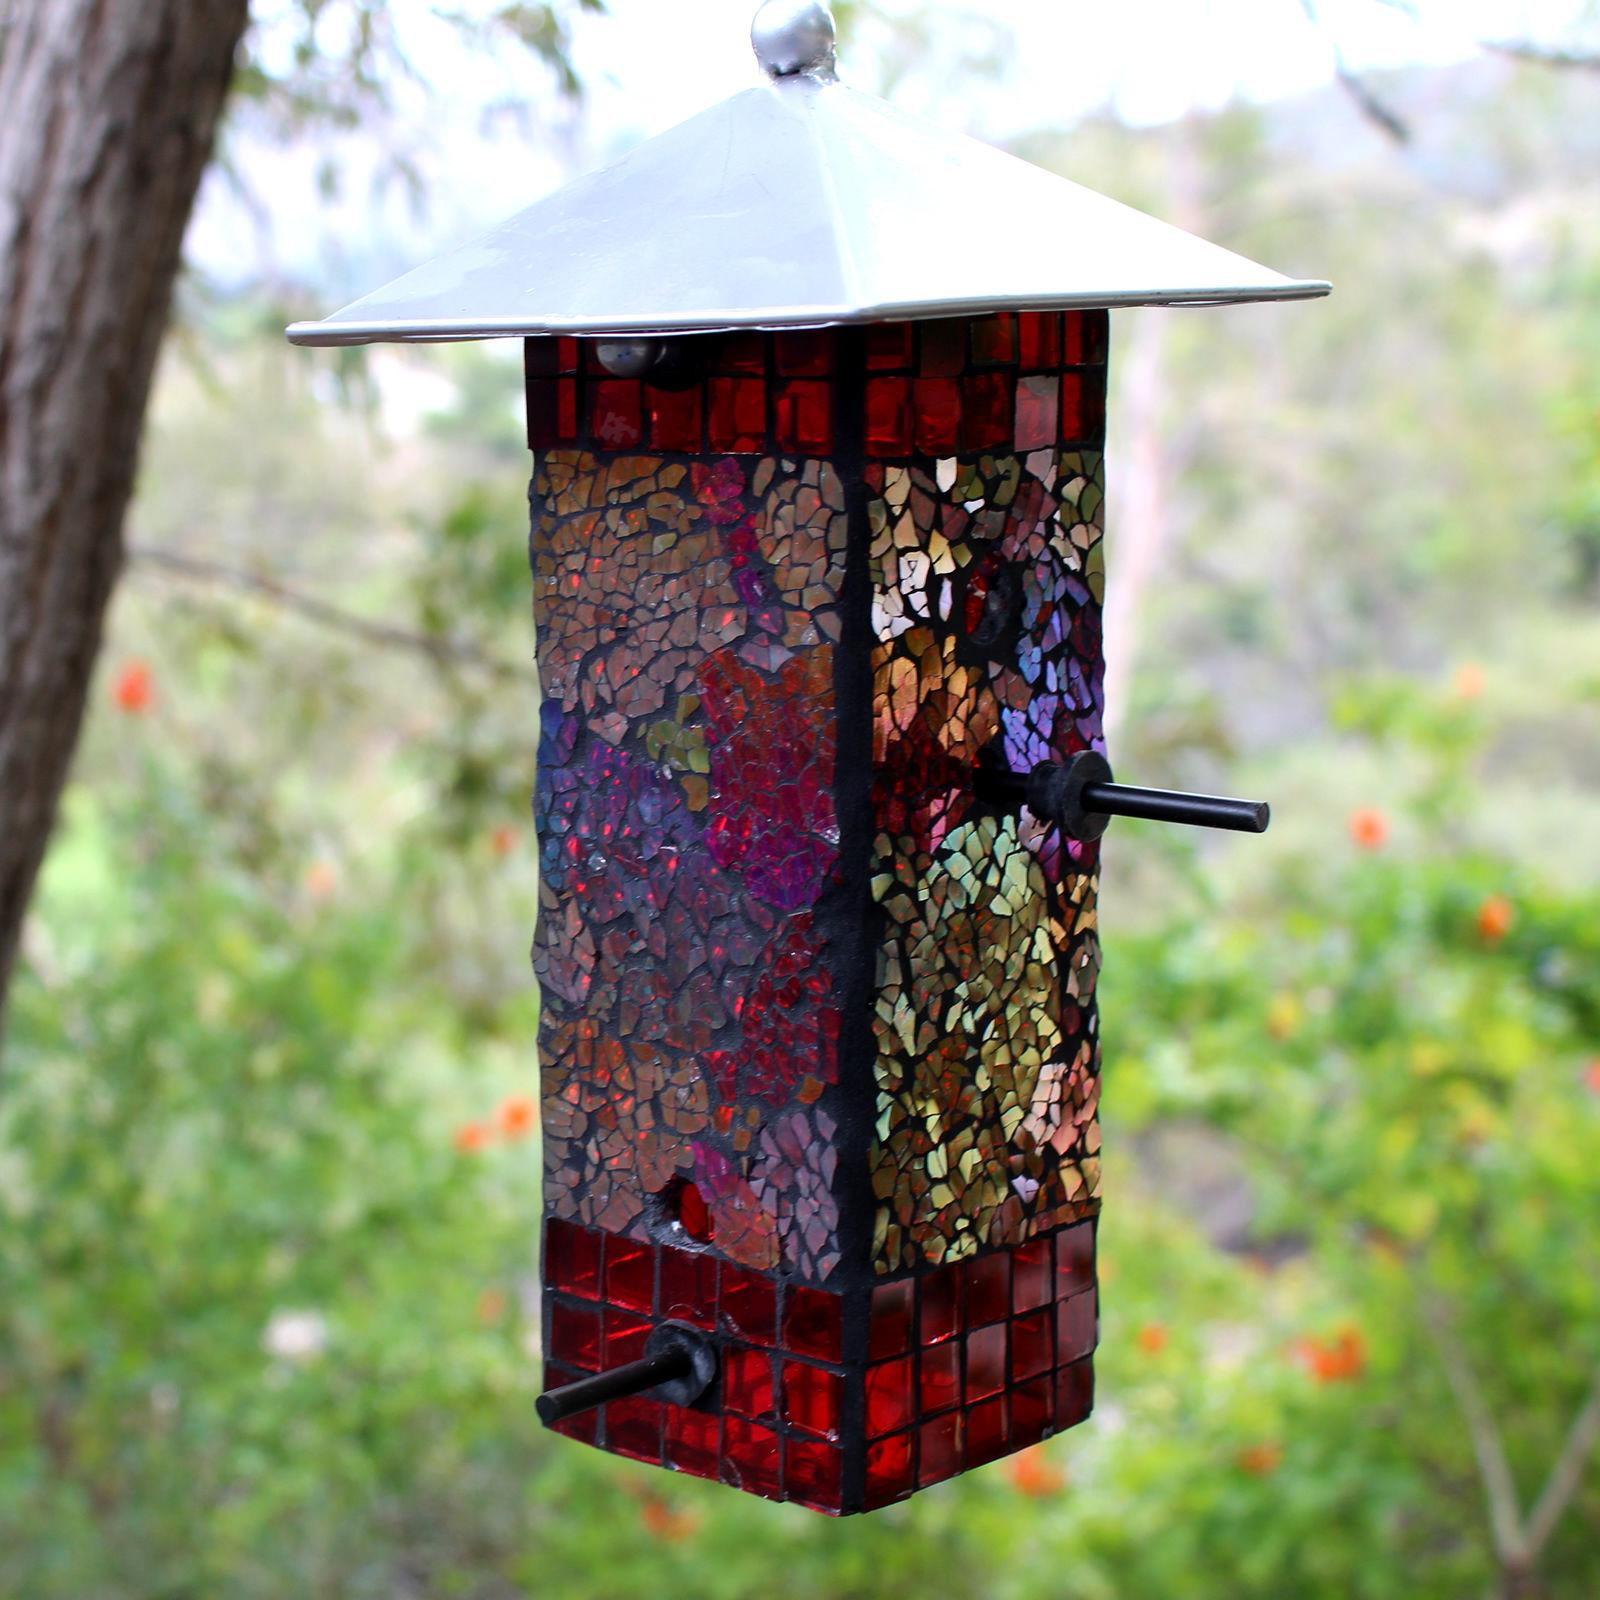 Mosaic Stained Glass Feeder Large Capacity NEW Yard Art Metal Top